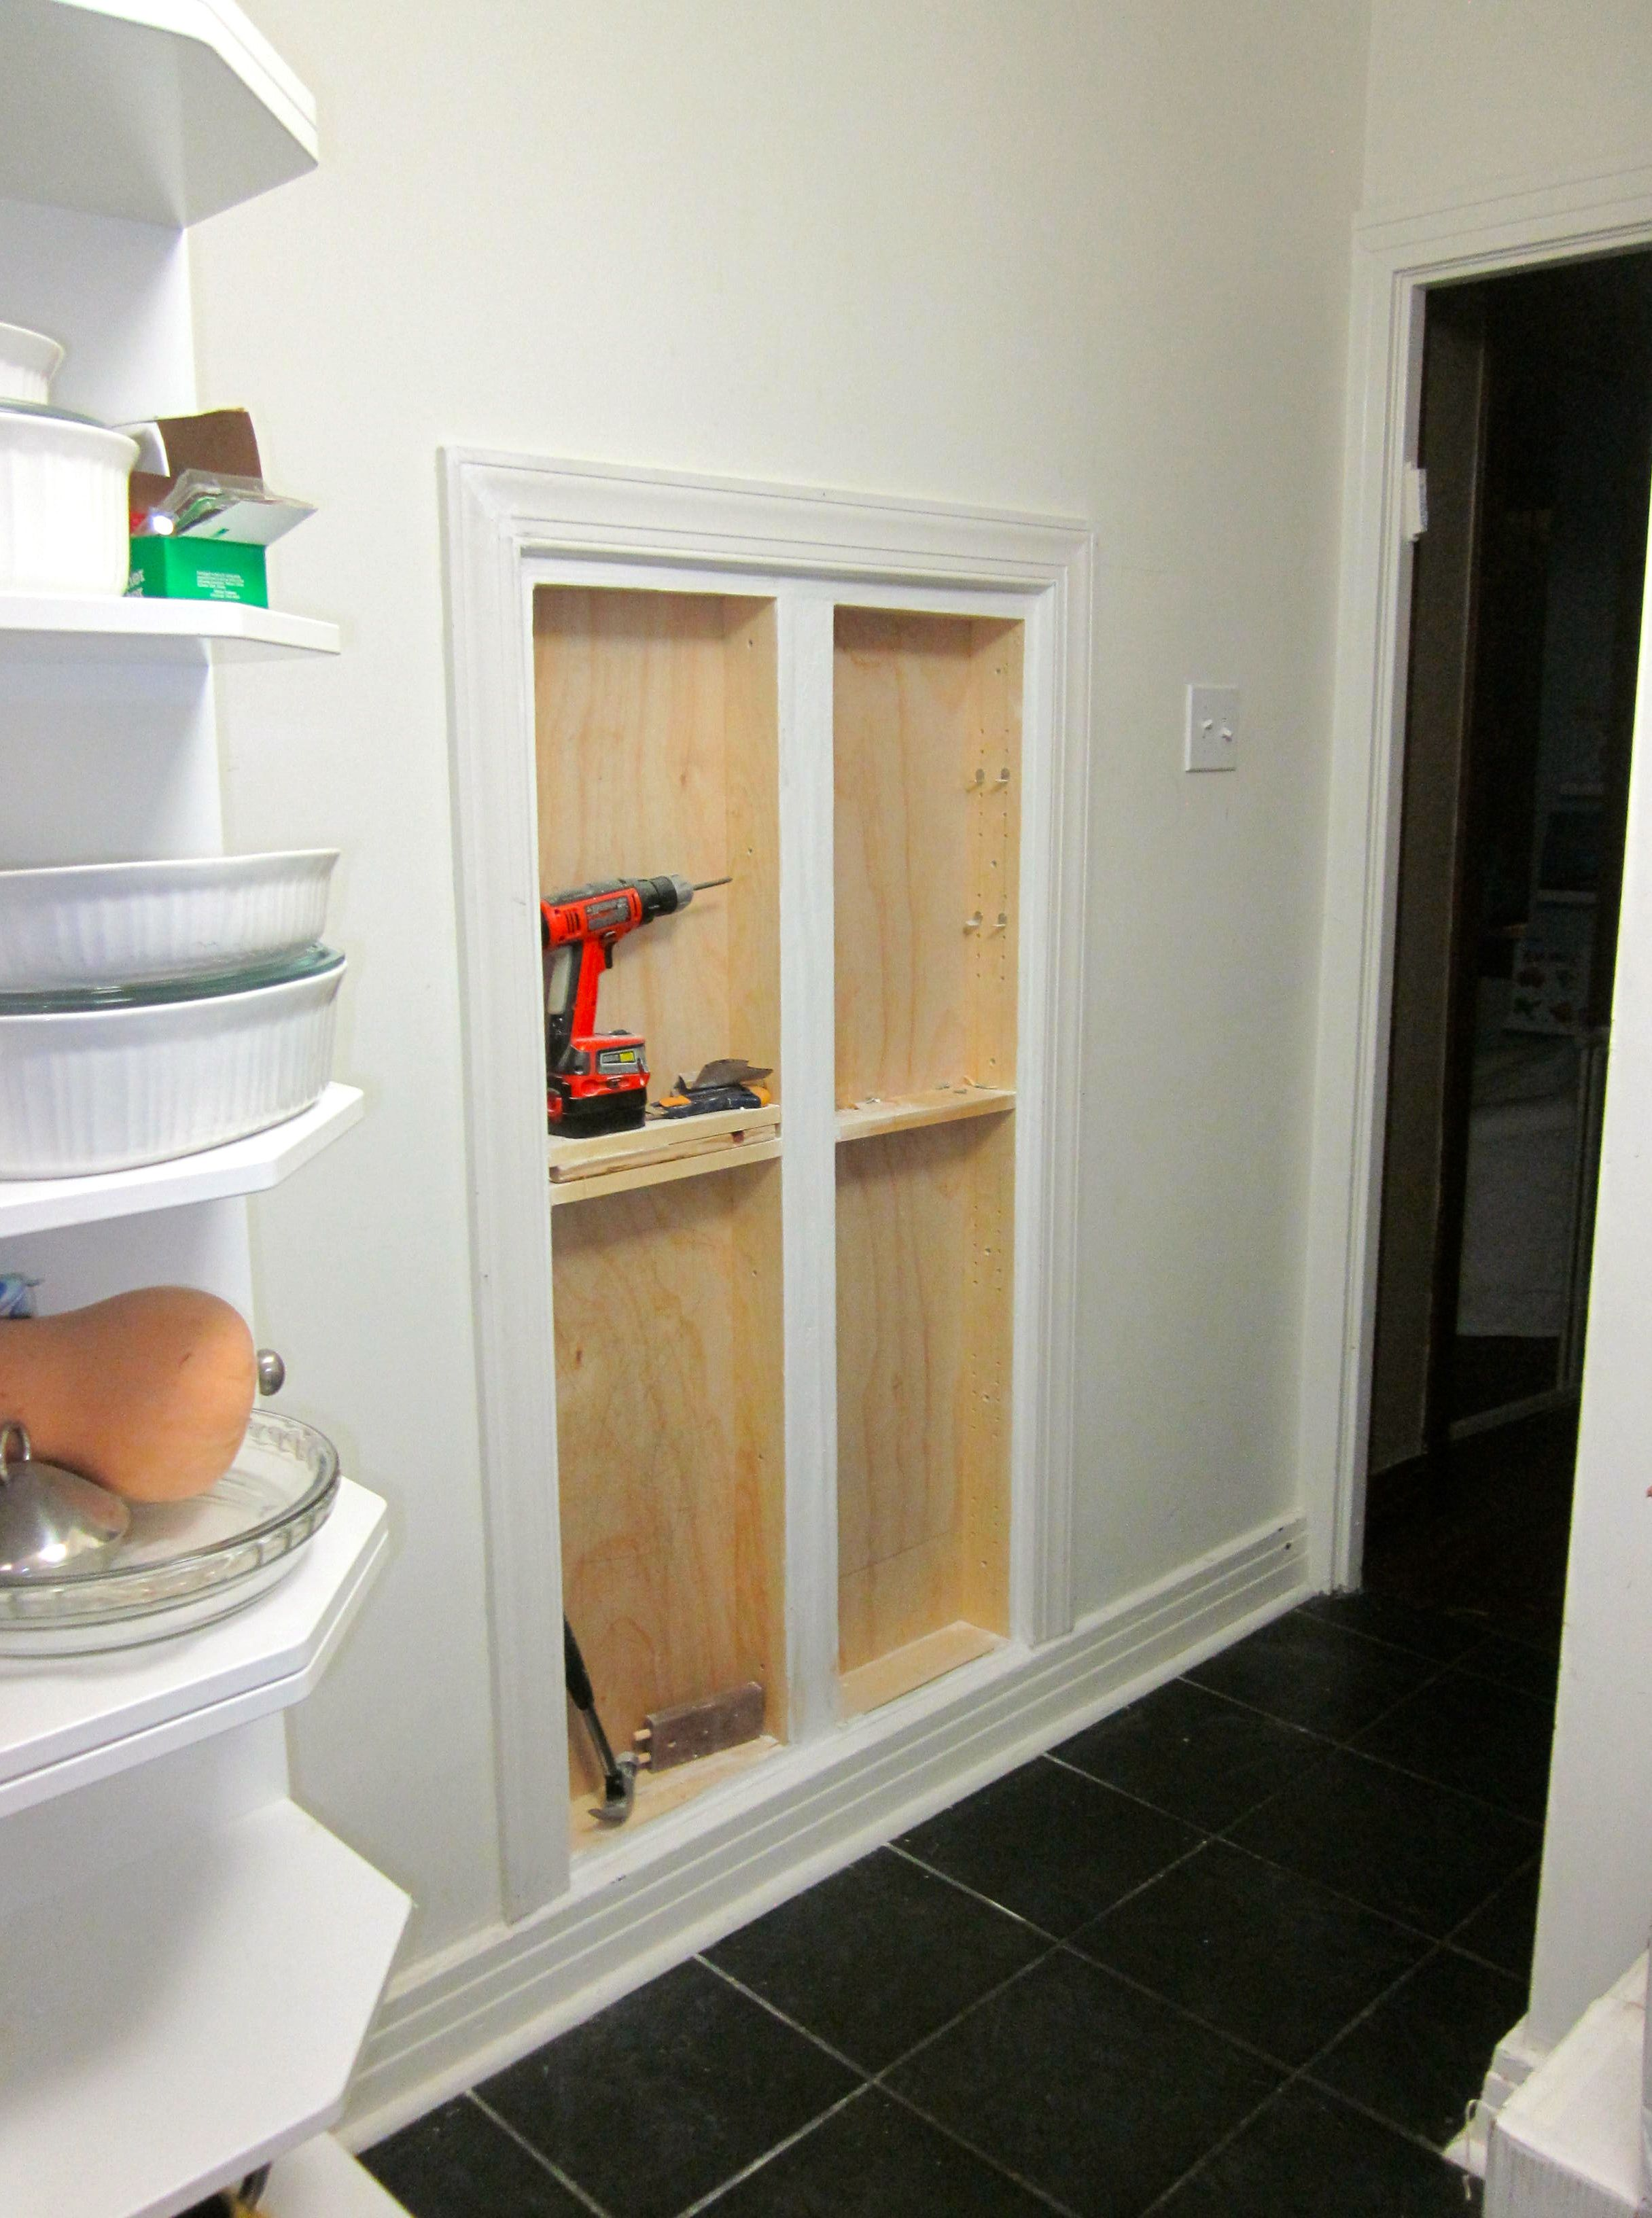 I Know This Great Hole In The Wall Girl Bathrooms Wall Storage Shallow Pantry